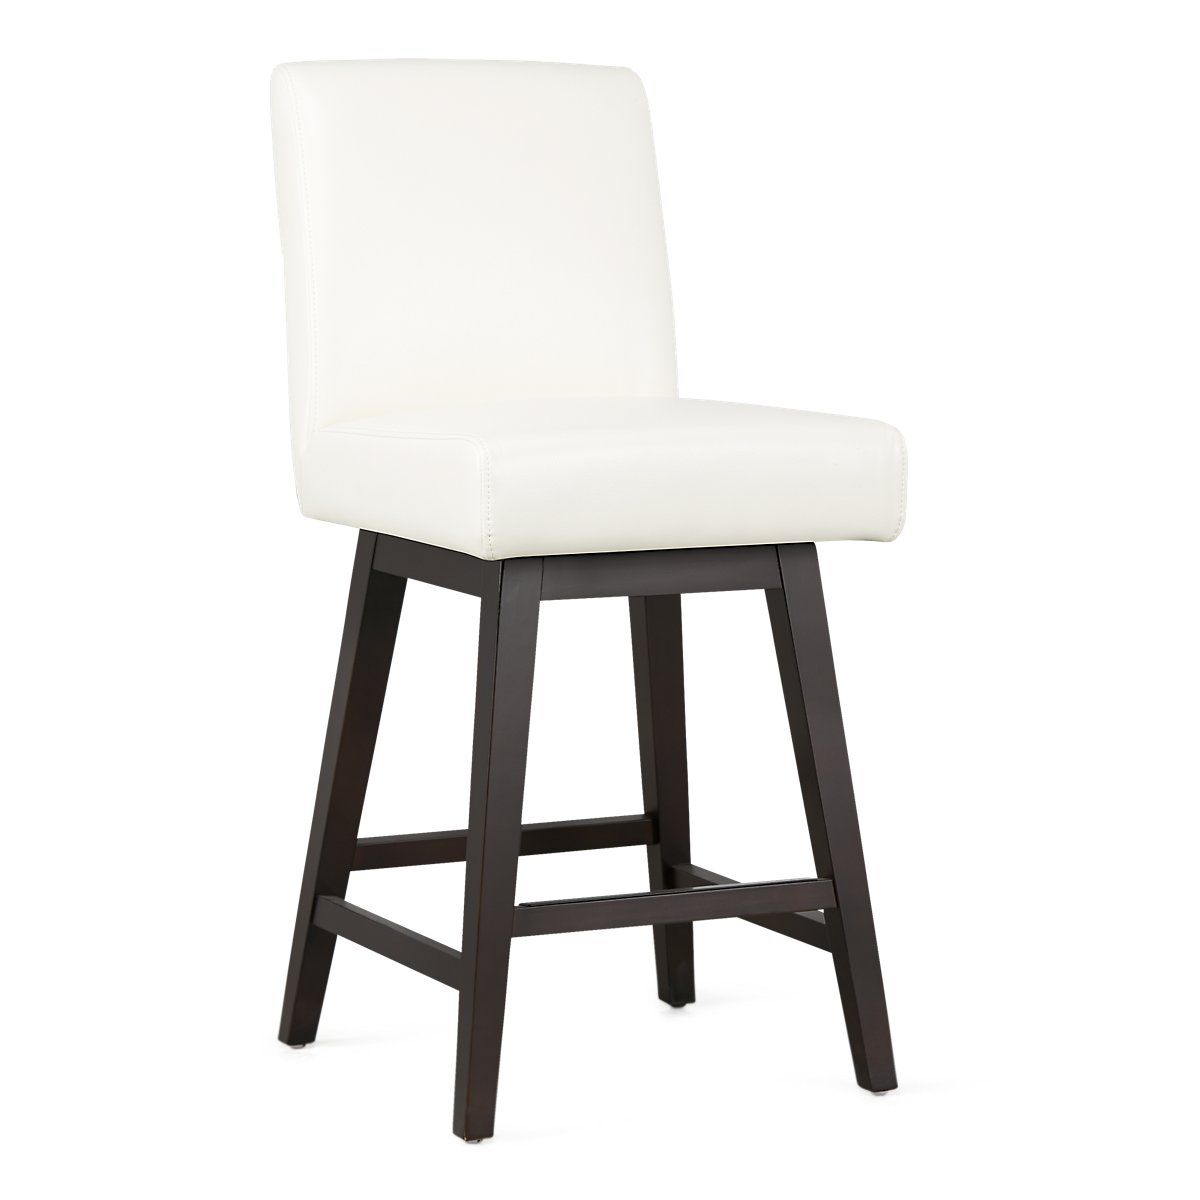 Superb Lago White Bonded Leather 24 Swivel Barstool Dining Room Onthecornerstone Fun Painted Chair Ideas Images Onthecornerstoneorg